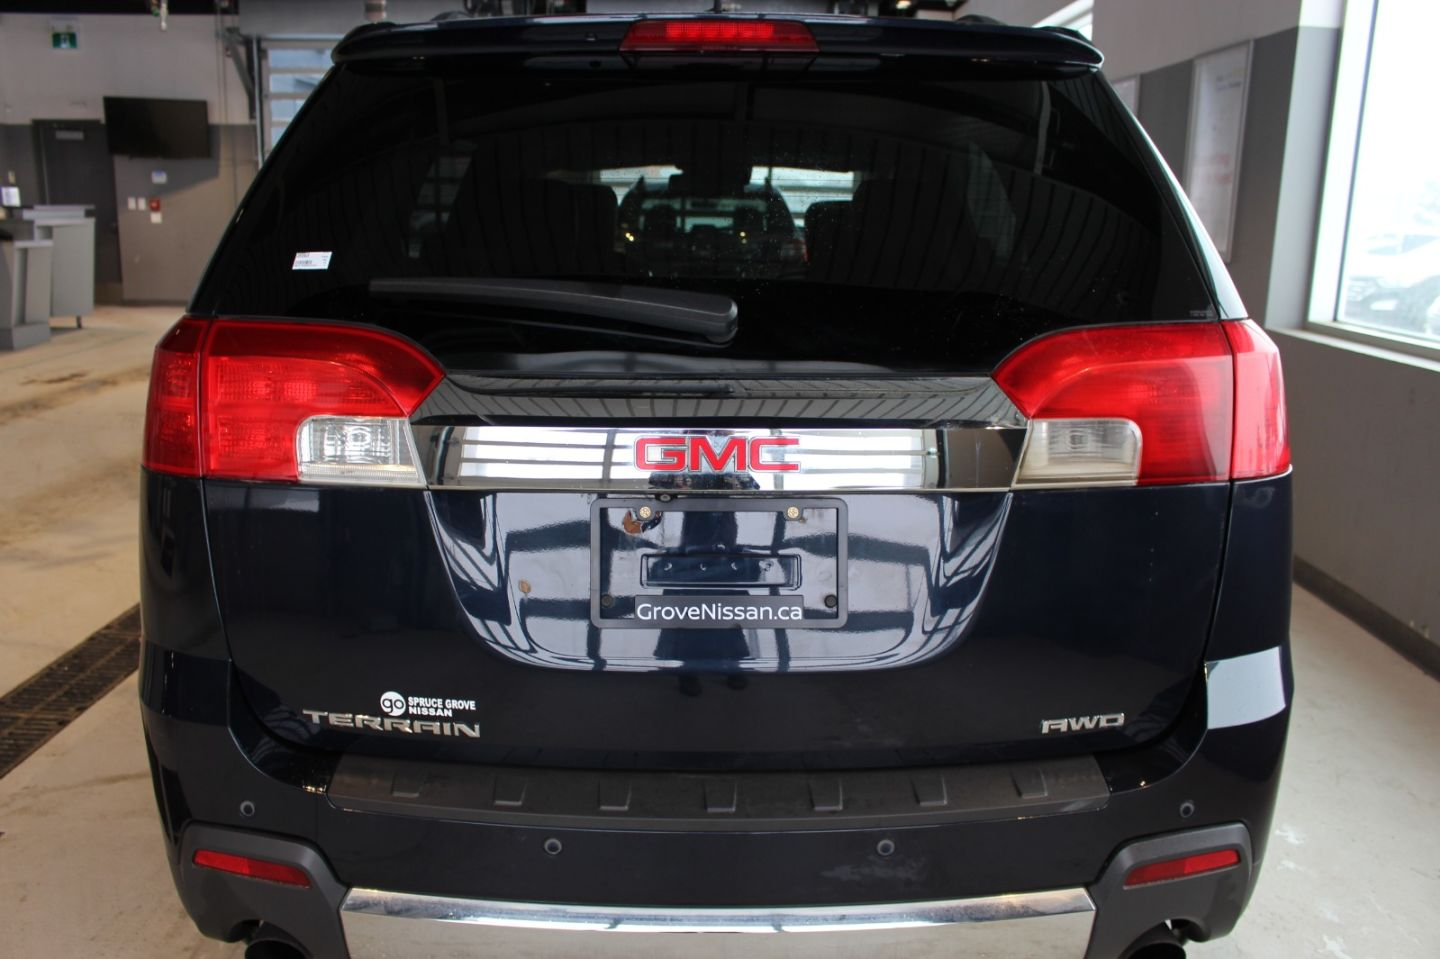 2015 GMC Terrain SLT for sale in Spruce Grove, Alberta